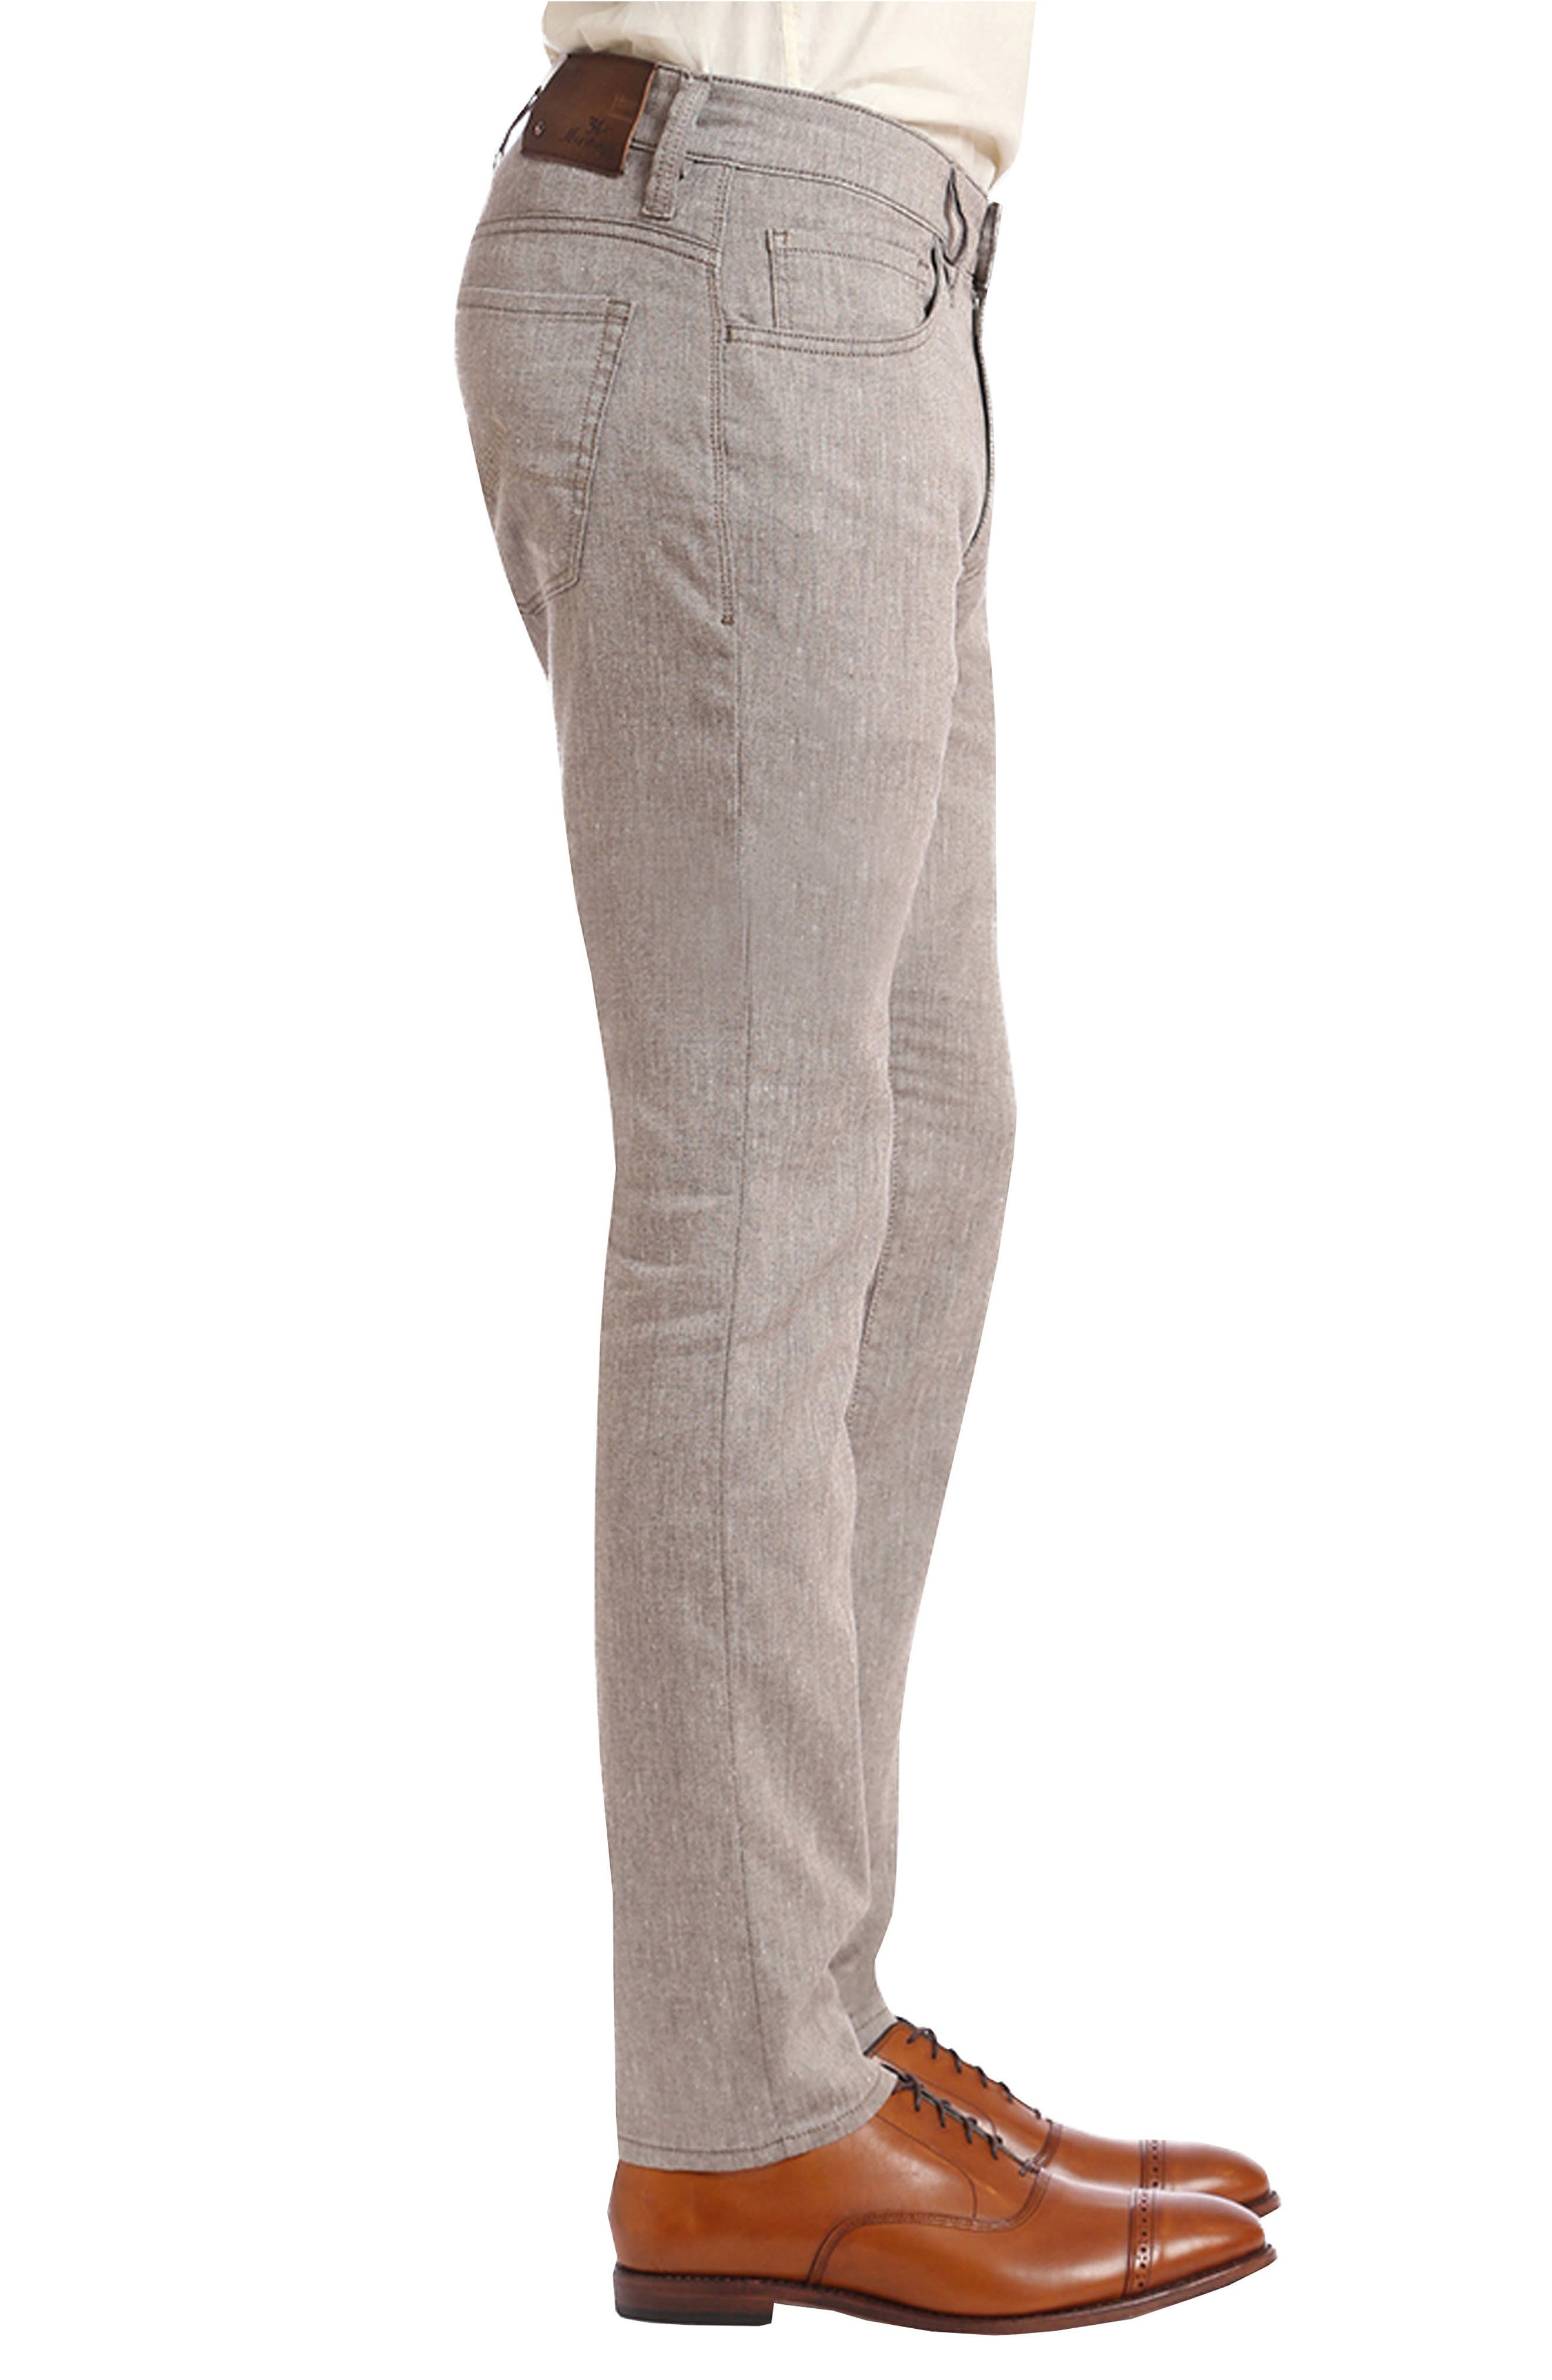 Courage Straight Leg Pants,                             Alternate thumbnail 3, color,